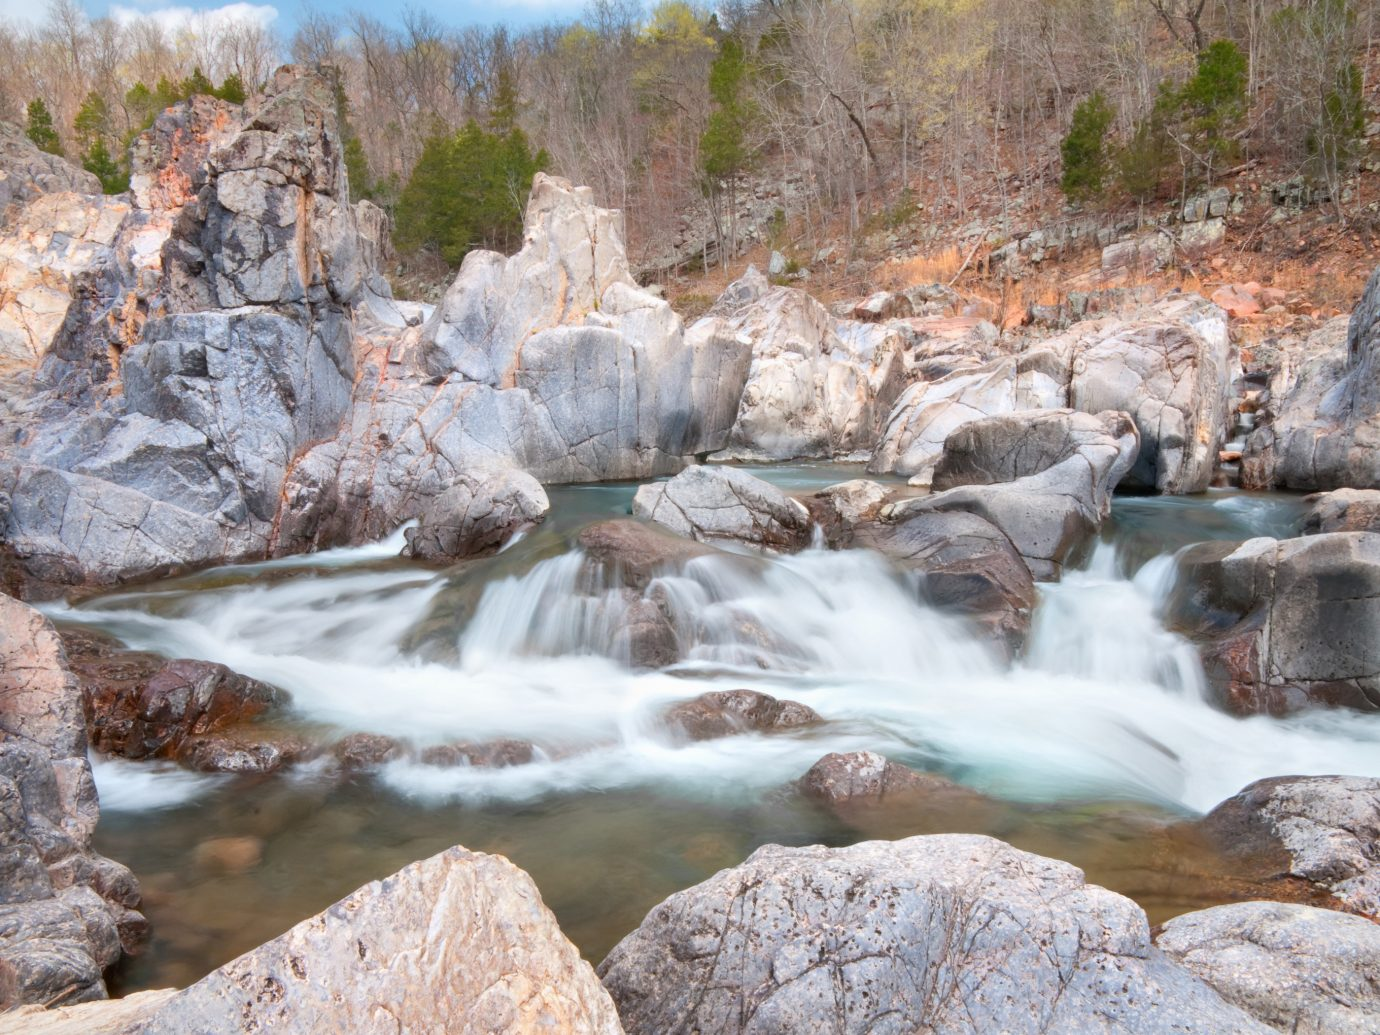 Trip Ideas rock outdoor Nature valley canyon water rocky wilderness landform body of water stream rapid watercourse River stream bed Waterfall wadi water feature landscape mountain geology formation autumn national park